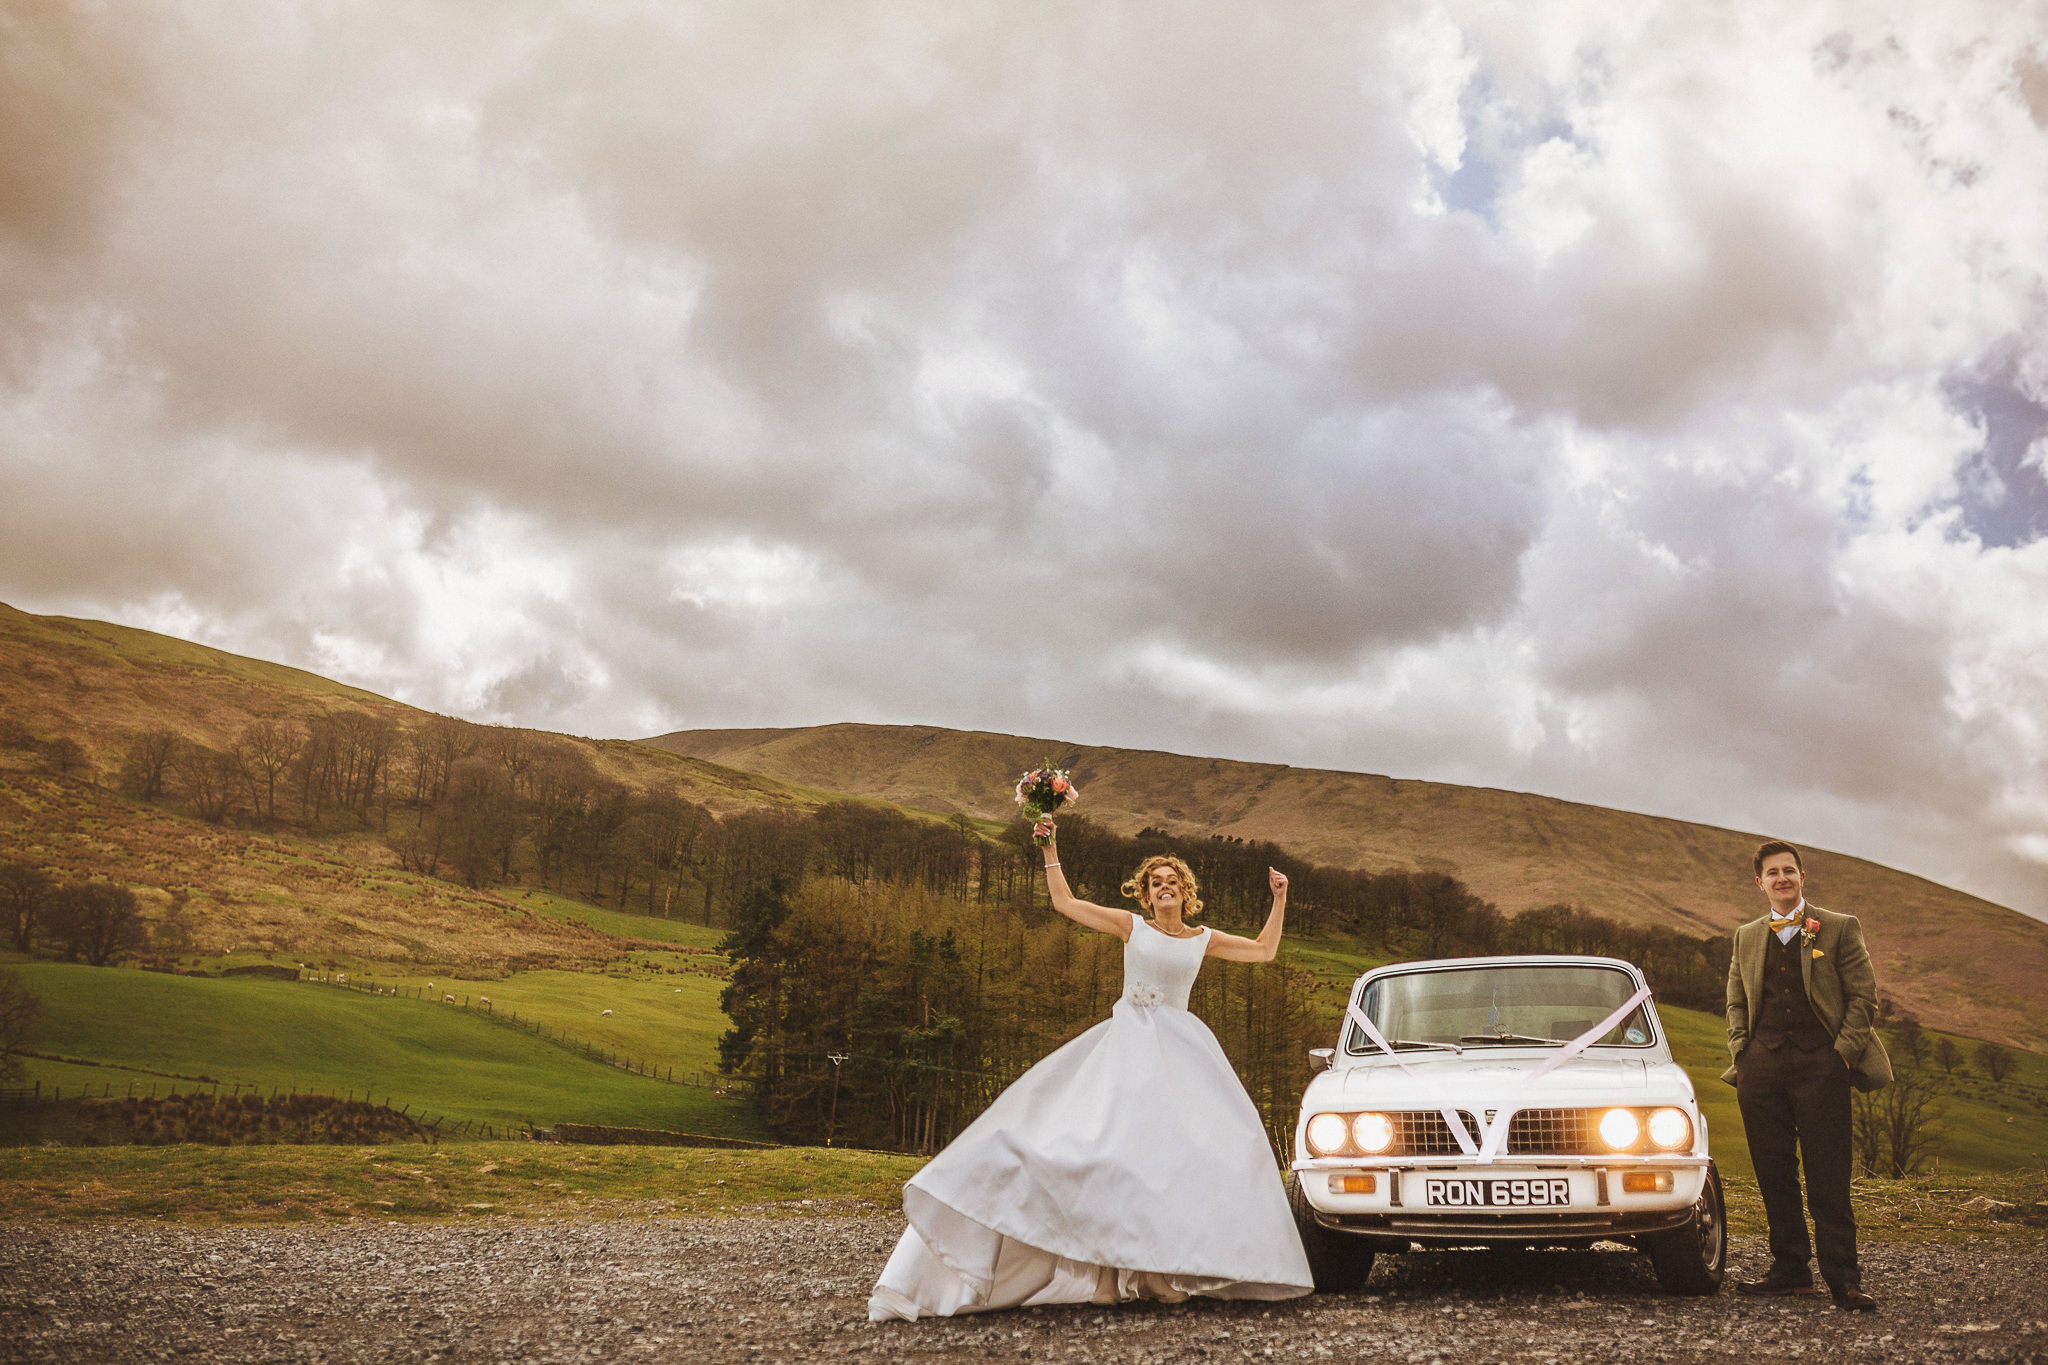 paul-marbrook-best-wedding-photographer-north-wales-112017